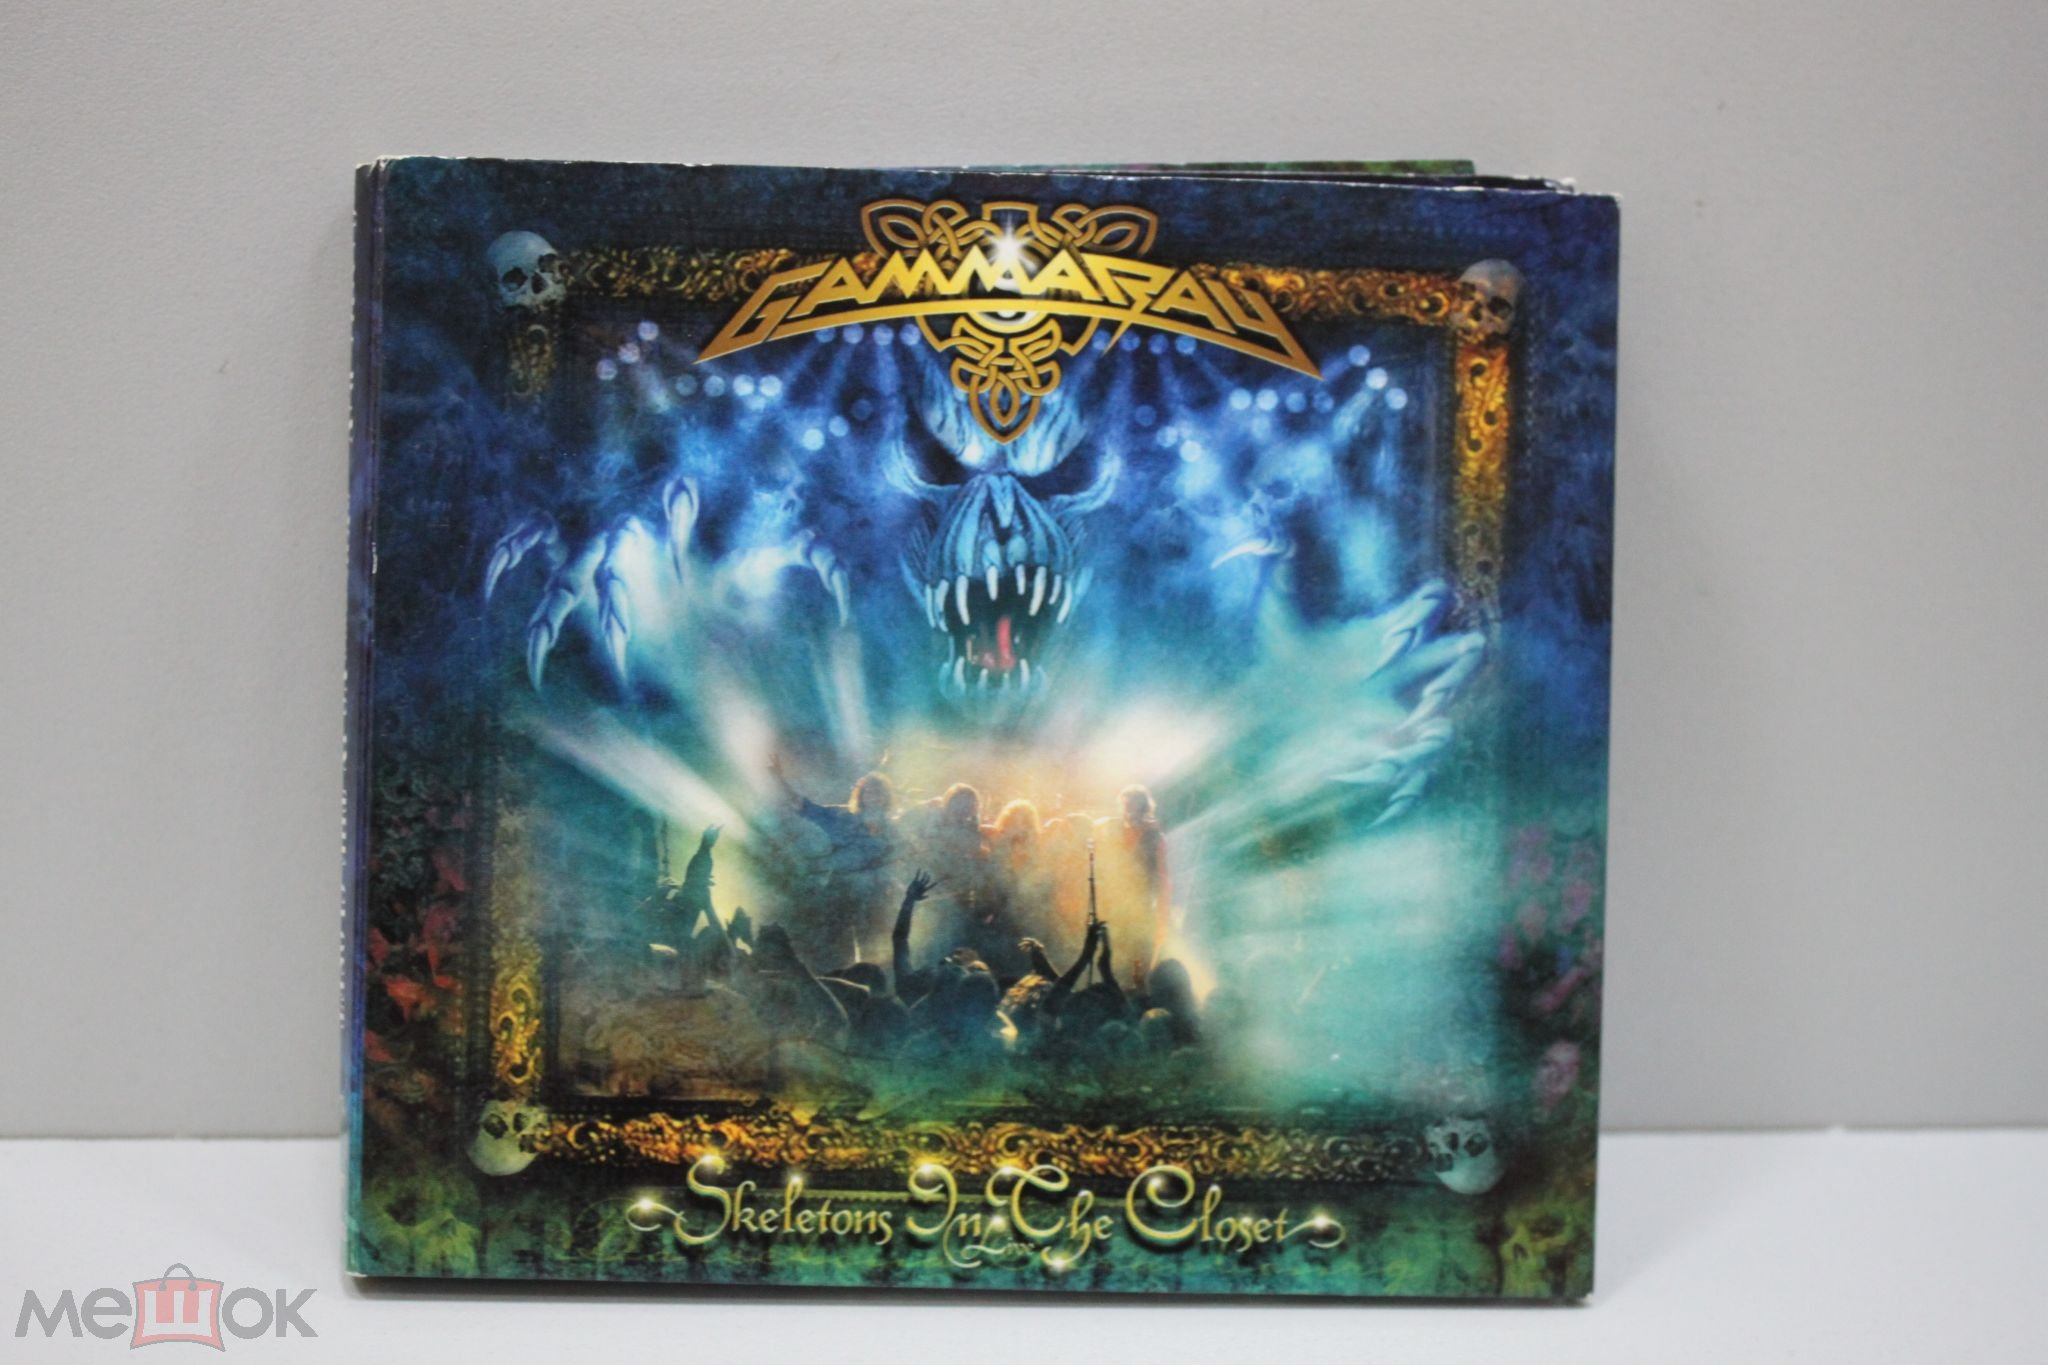 Gamma Ray 2003 Skeletons In The Closet Metal Is Records Misdl023